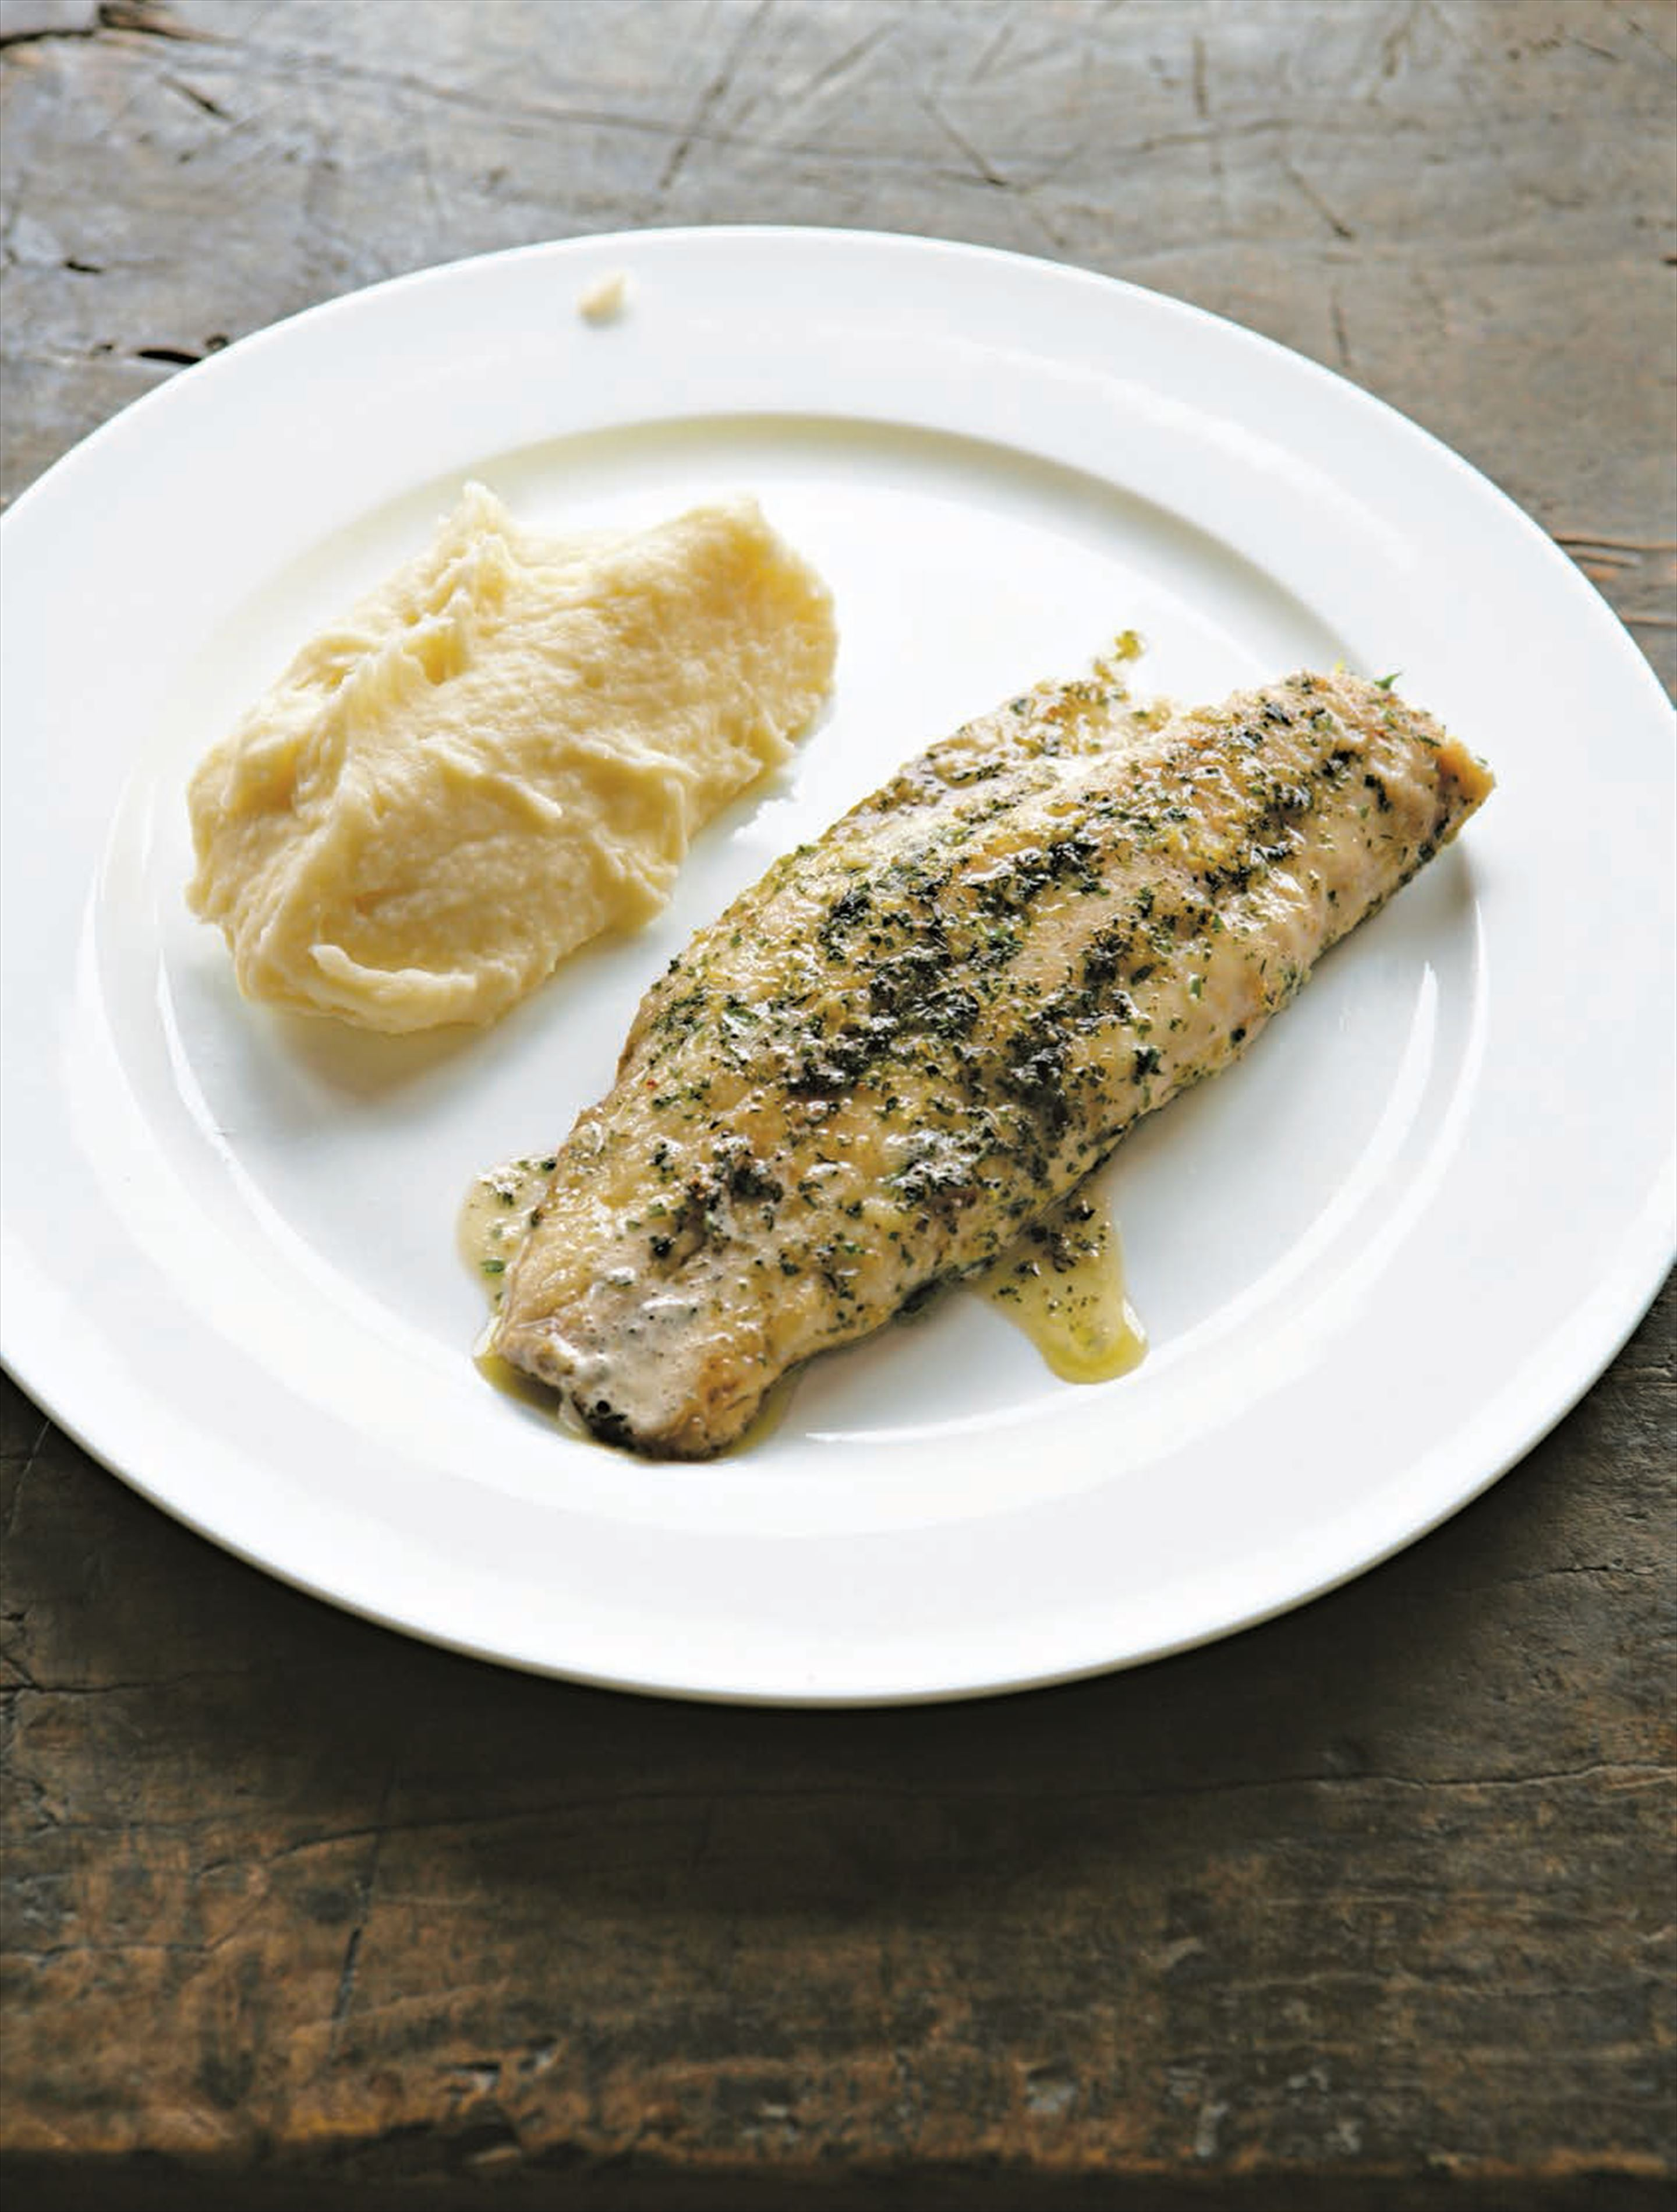 Fried fish fillets with herbs and lemon